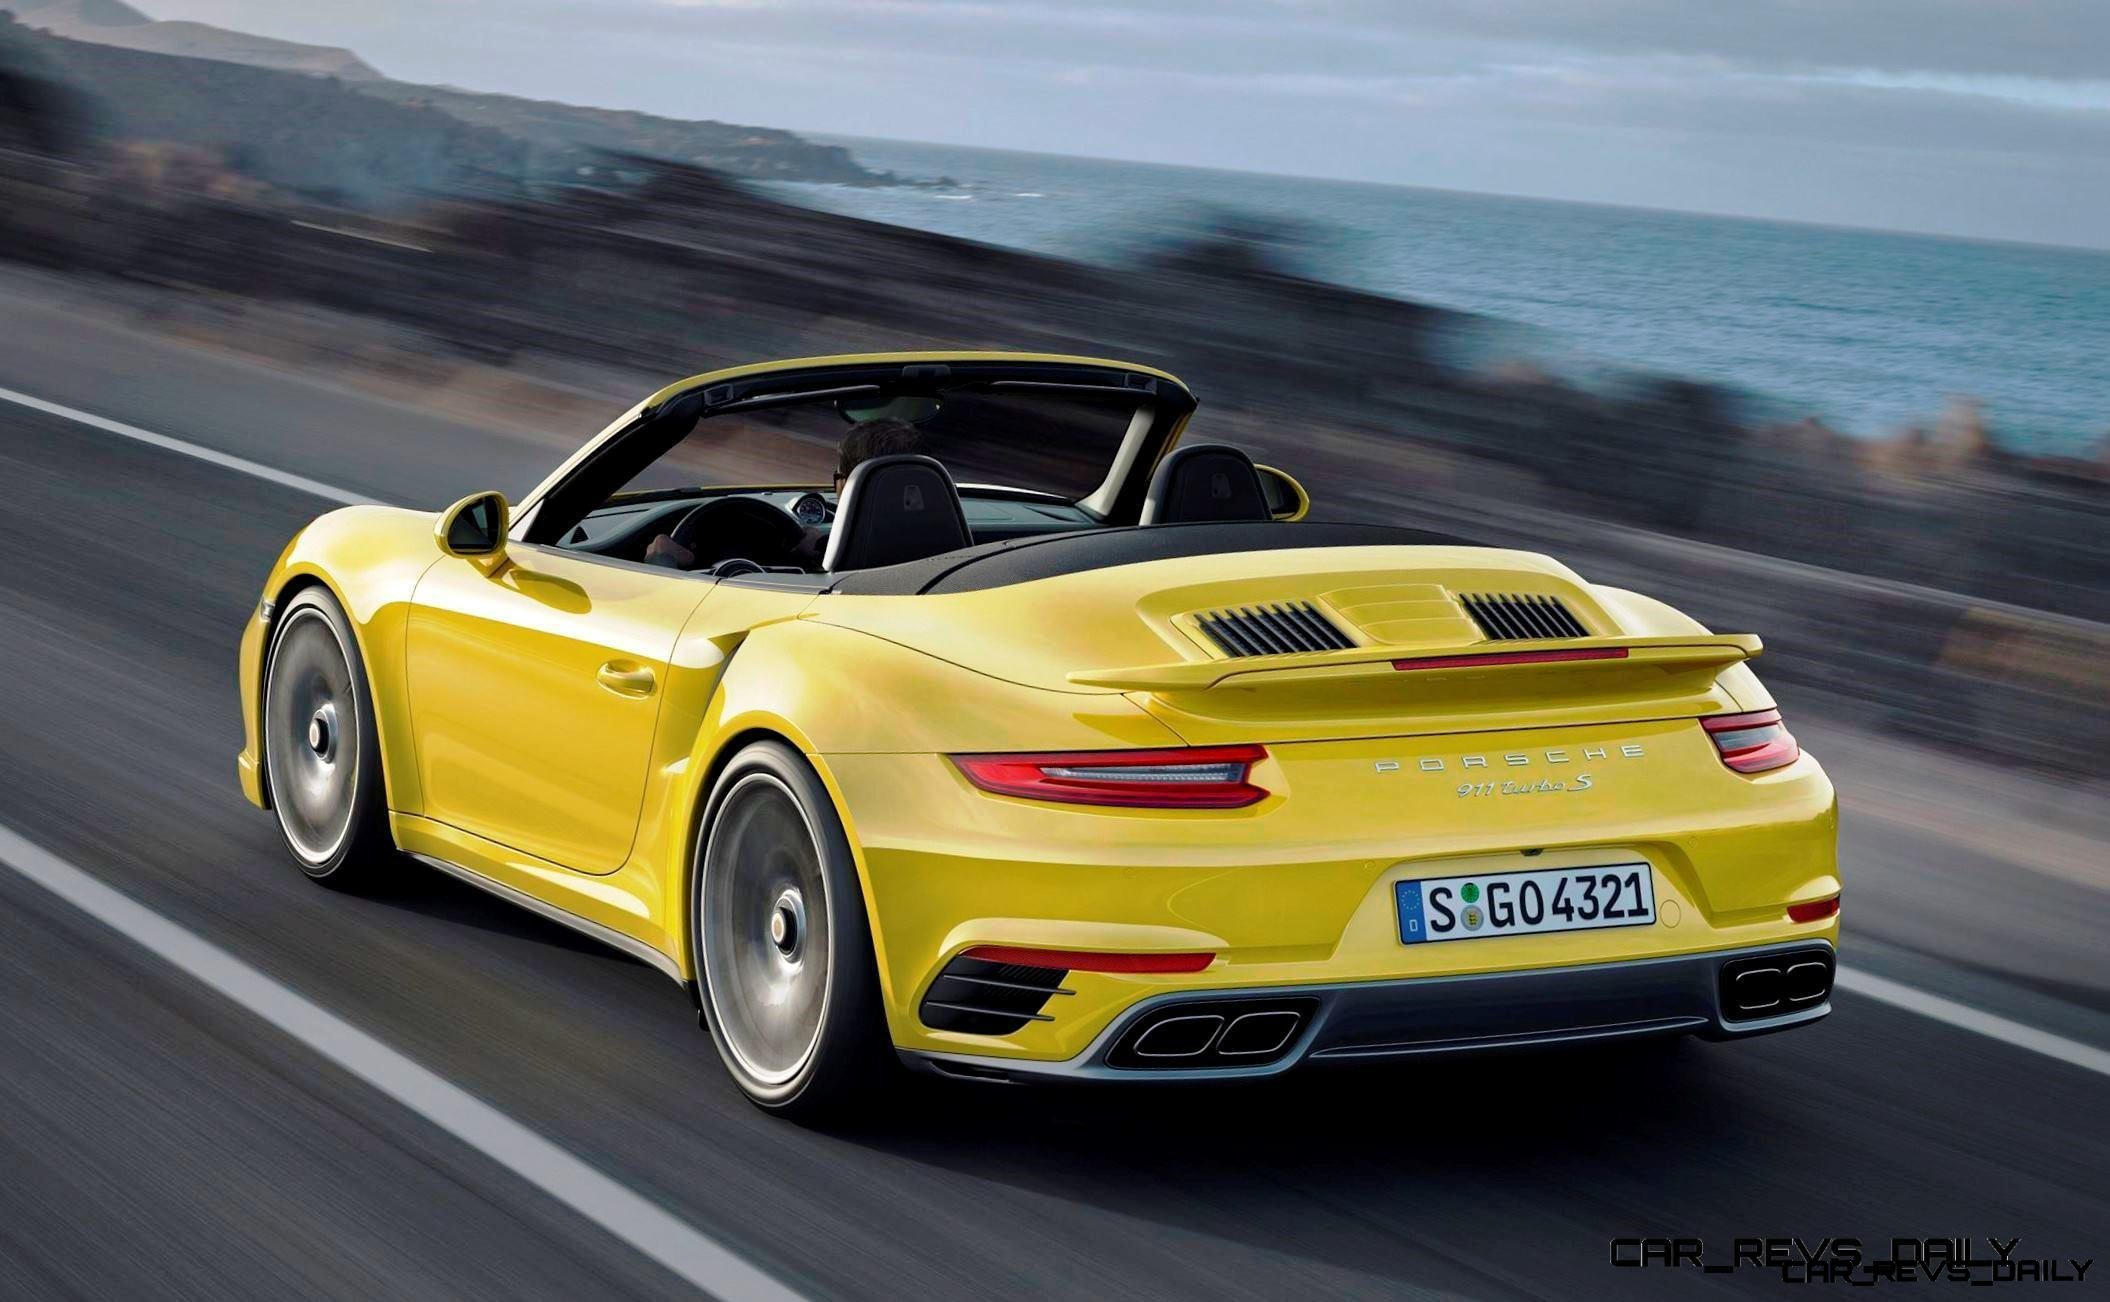 Excellent 25s 215MPH 2017 Porsche 911 Turbo S Revealed  New Anti